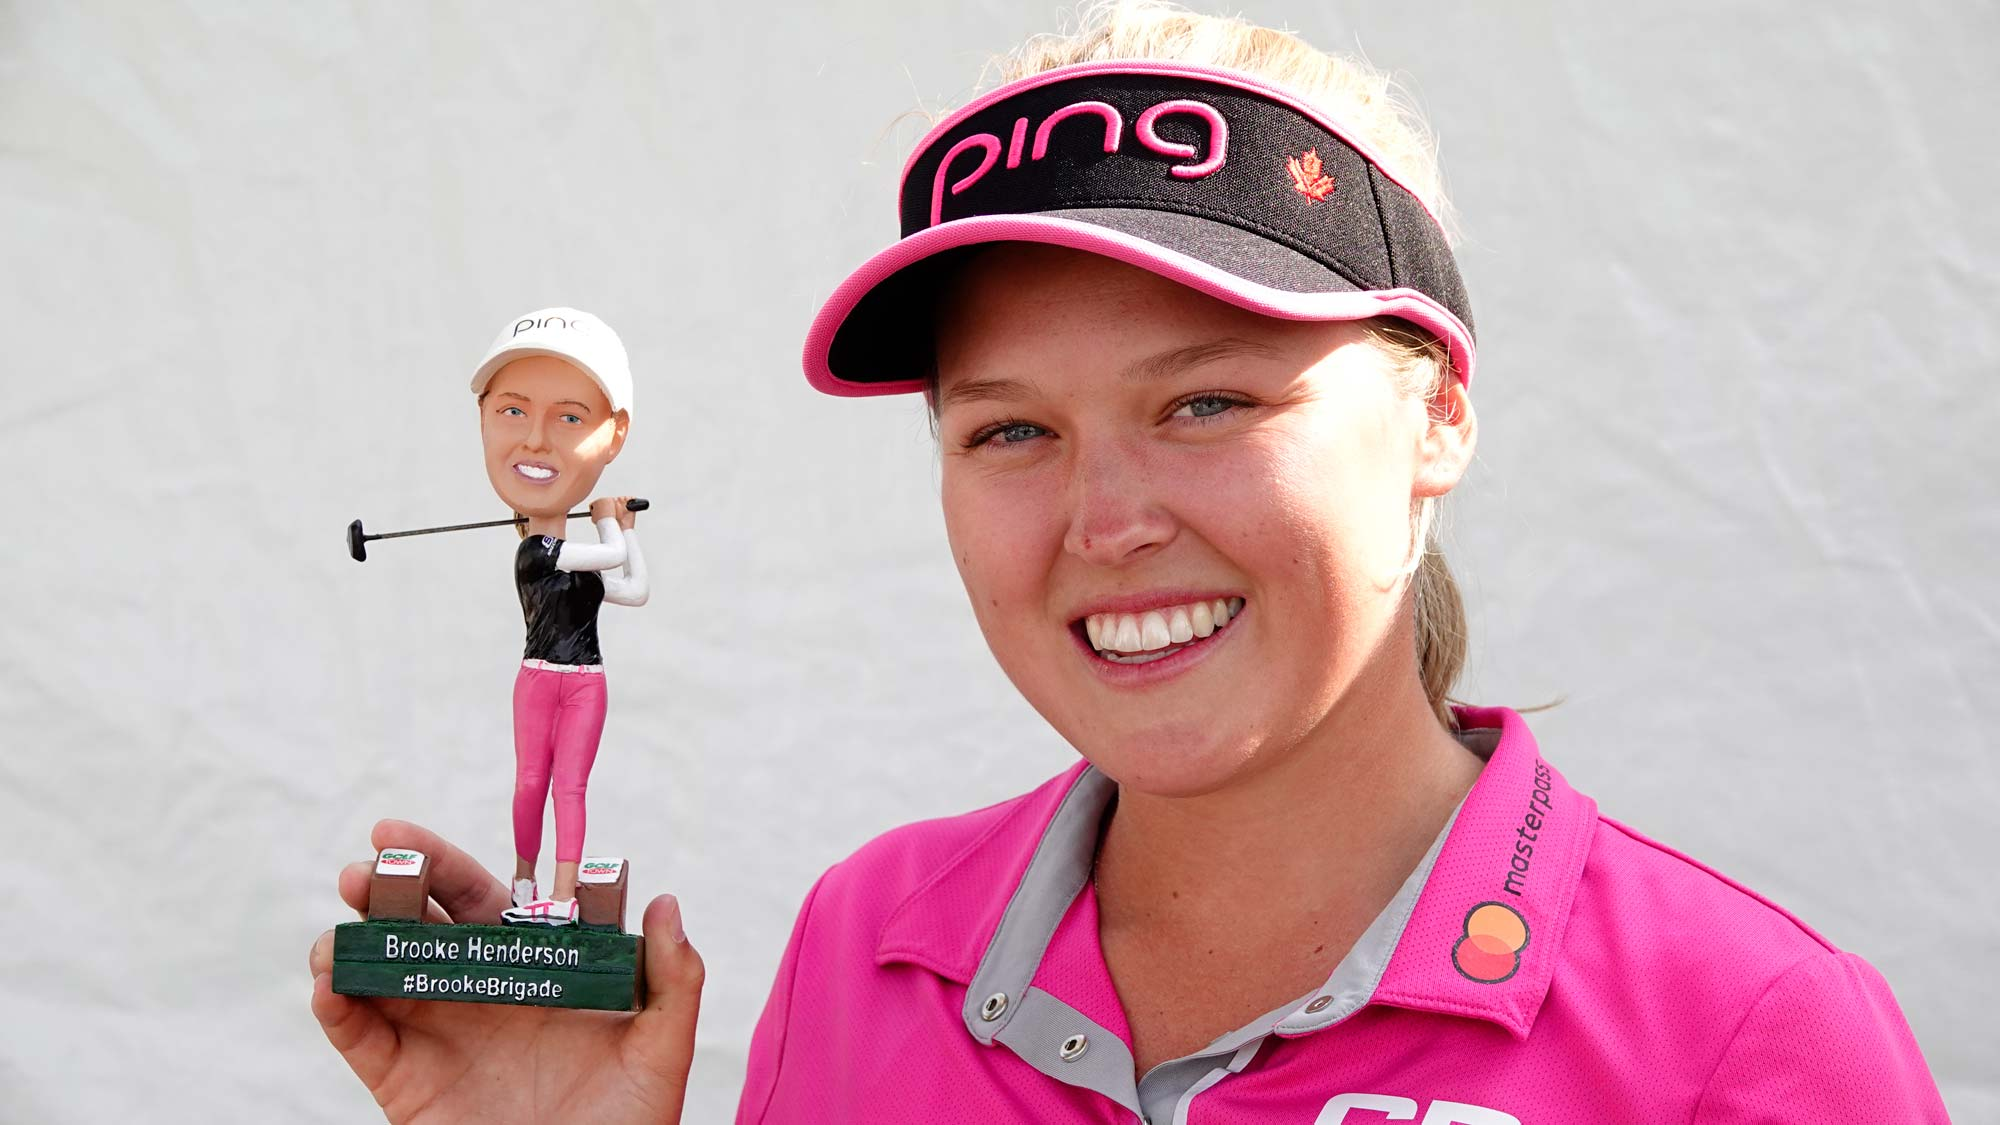 Brooke Henderson poses with her bobble head before the 2018 CP Women's Open